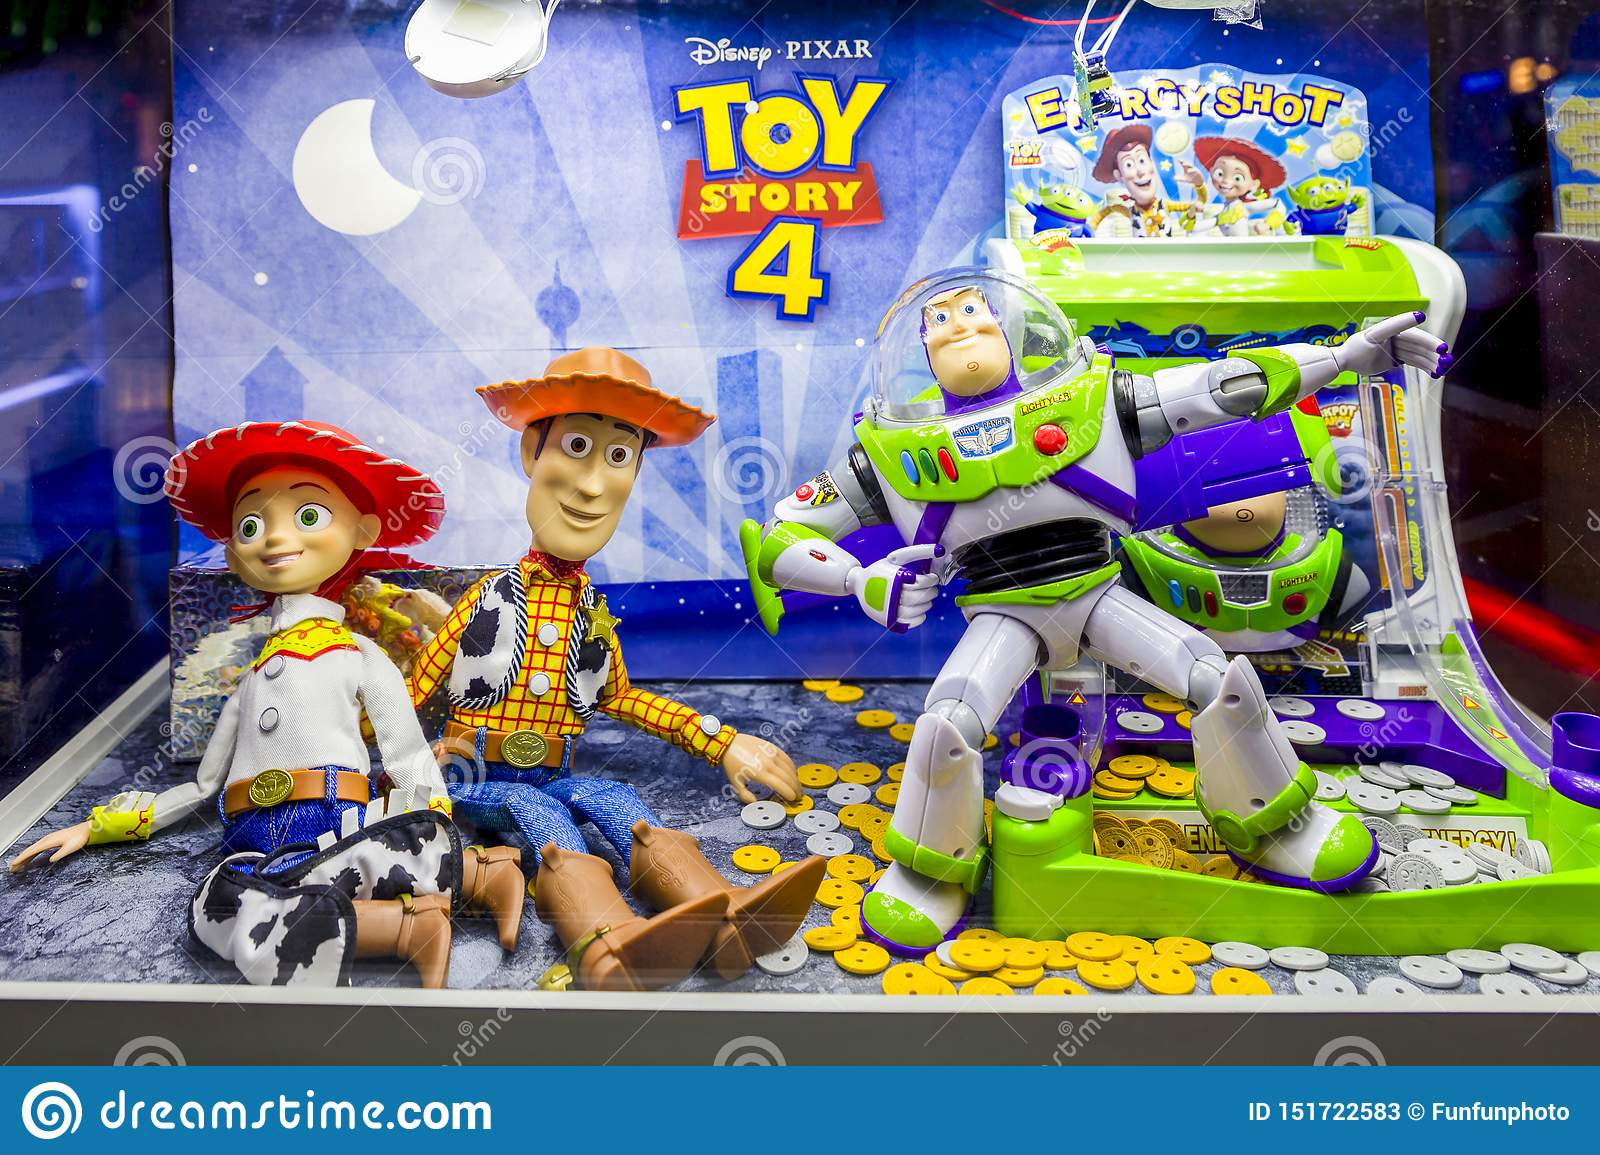 Bangkok, Thailand - June 22, 2019 : Toy Story 4 Movie Backdrop Display With  Cartoon Characters In Movie Theatre Editorial Stock Photo - Image of  business, figure: 151722583